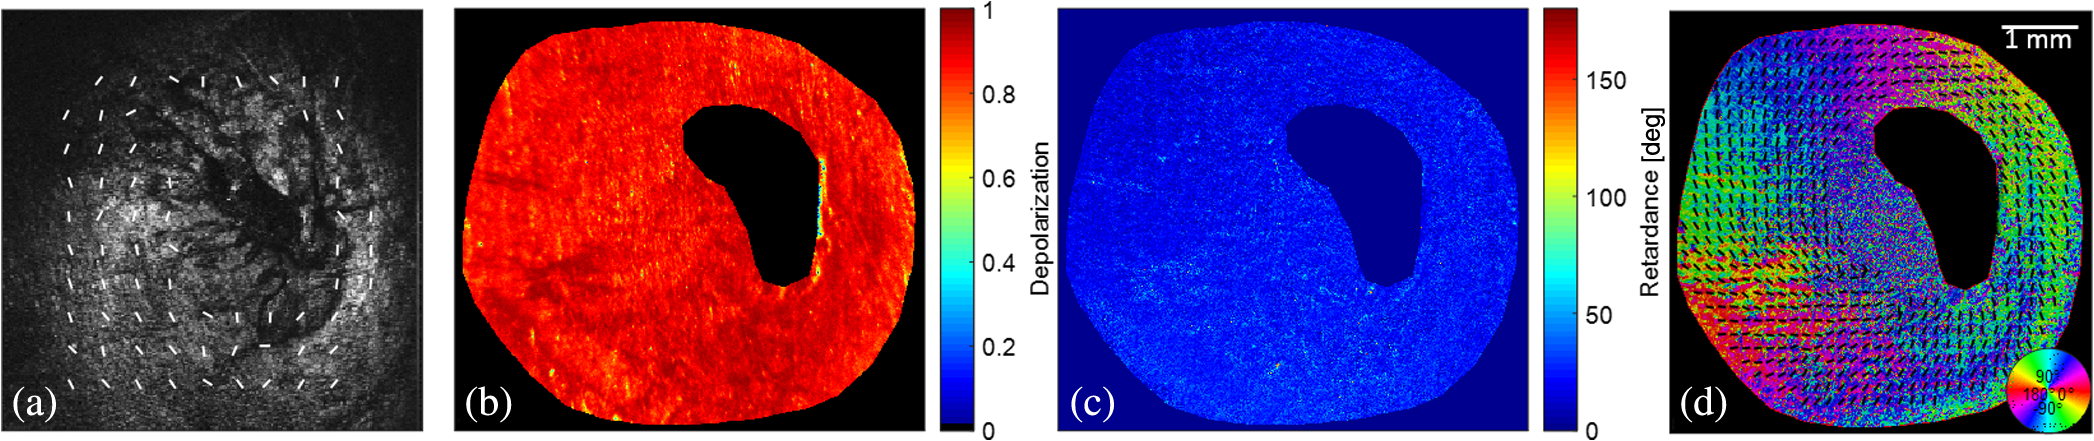 Use of Mueller matrix polarimetry and optical coherence